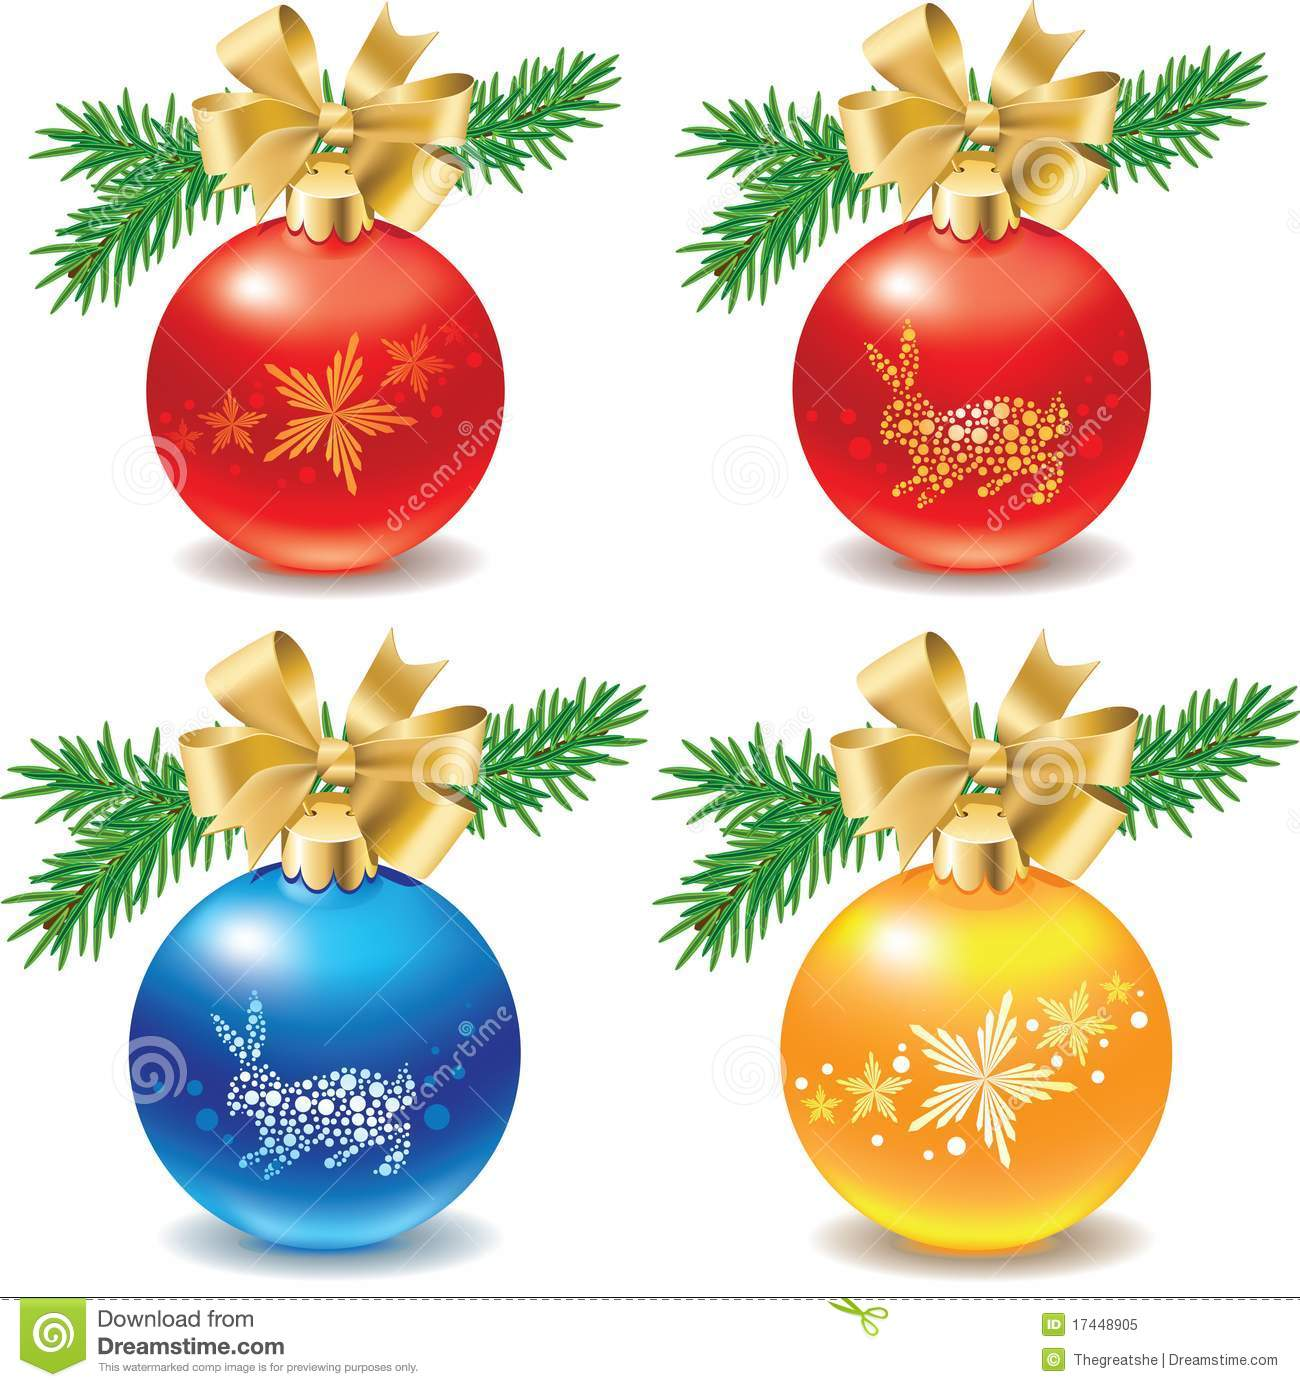 download icon set of christmas balls decorations stock vector illustration of icon festive